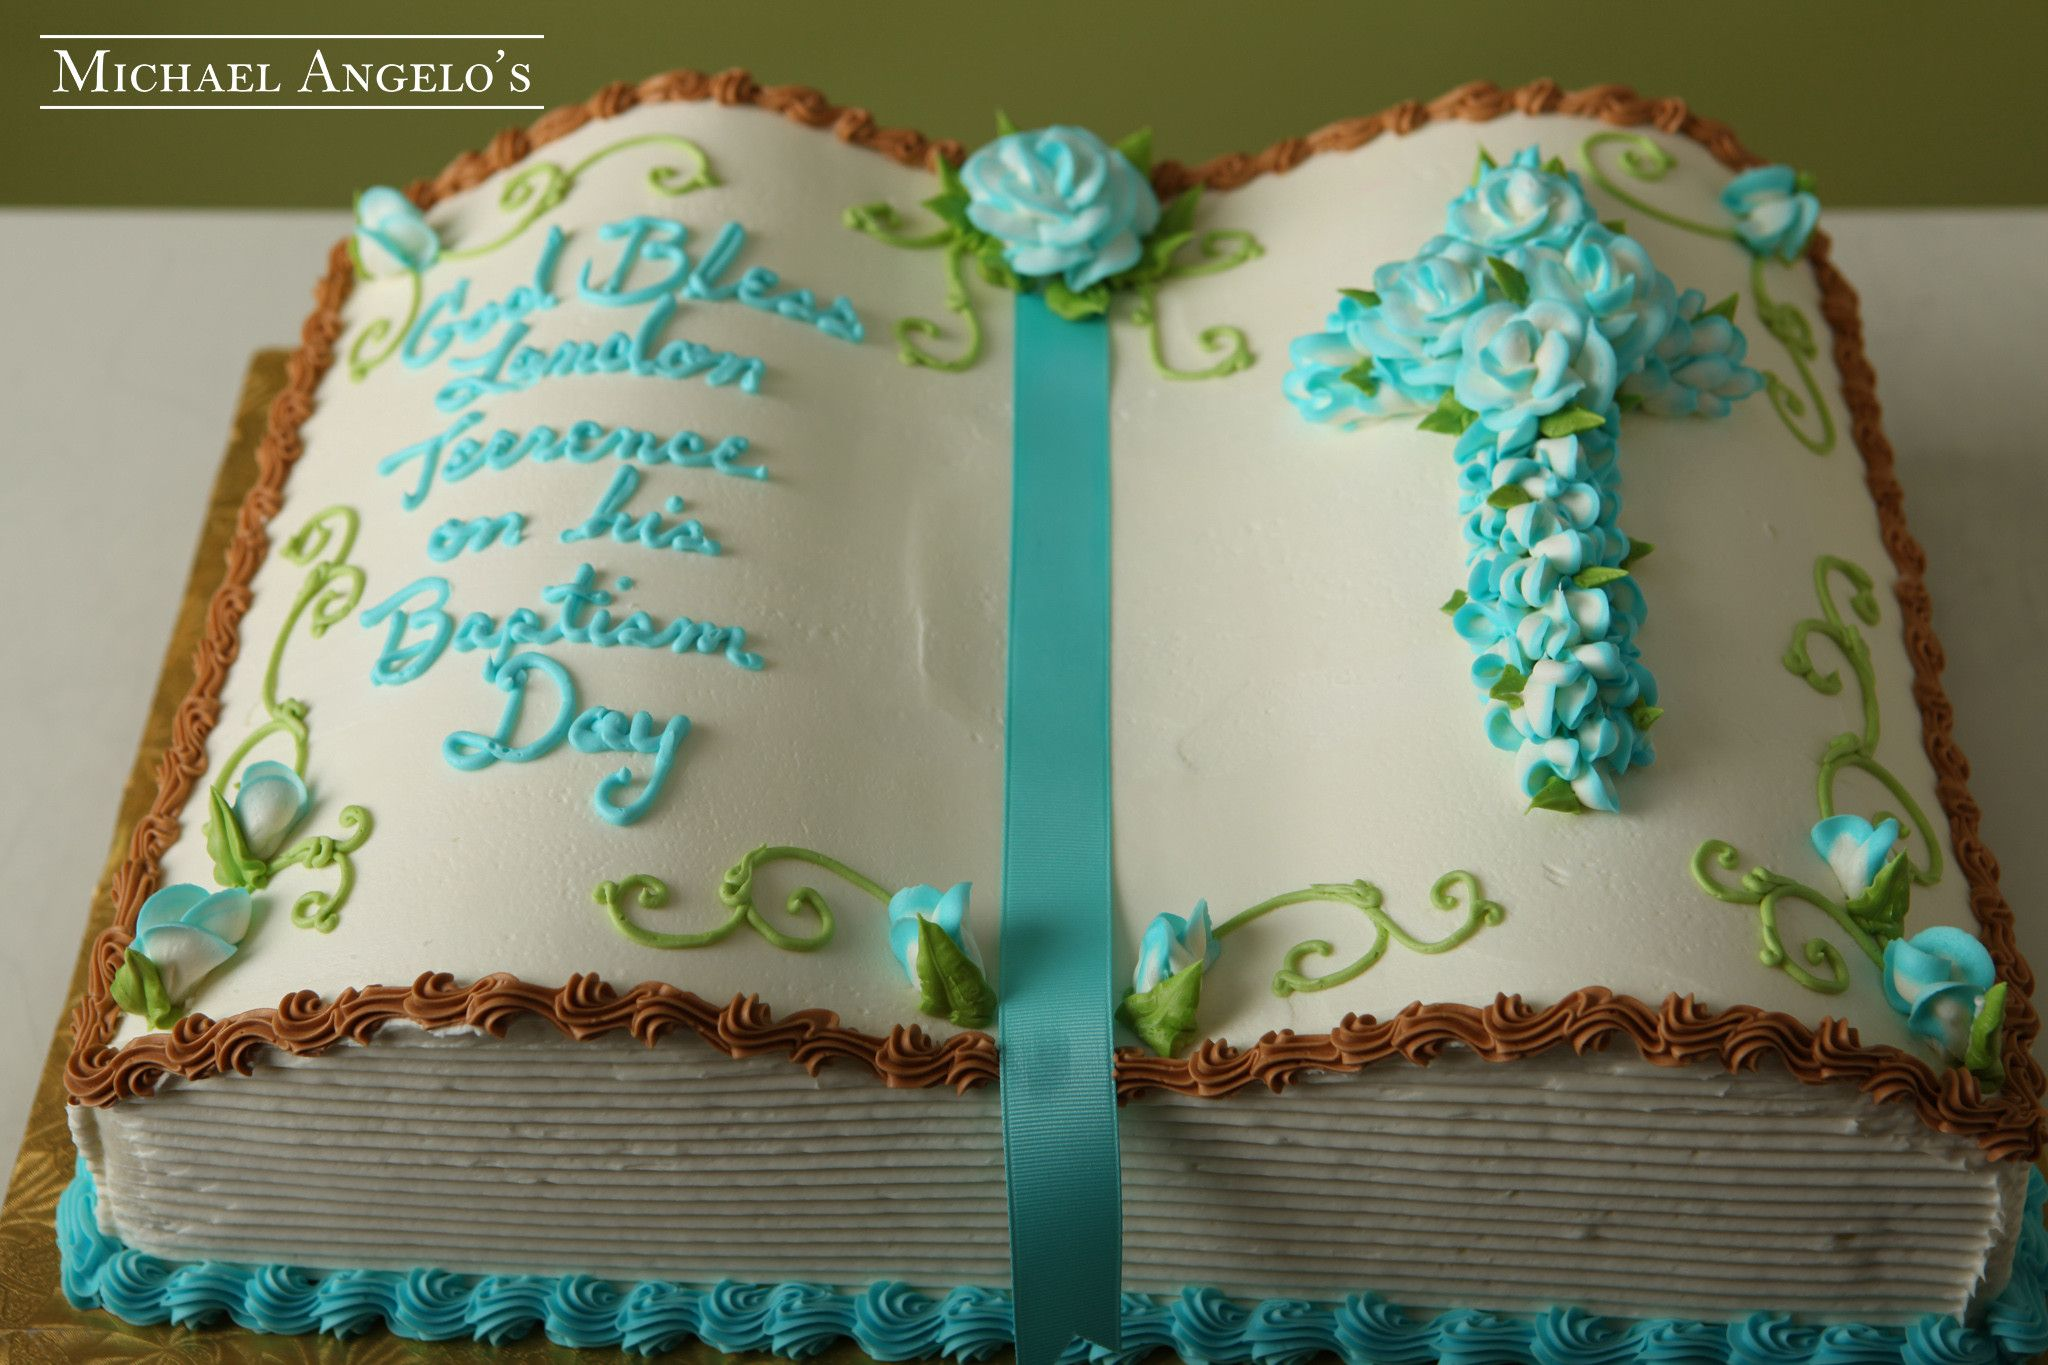 Cake Decorated Like Books : Opened Bible #66Religious Bible, Messages and Decorating